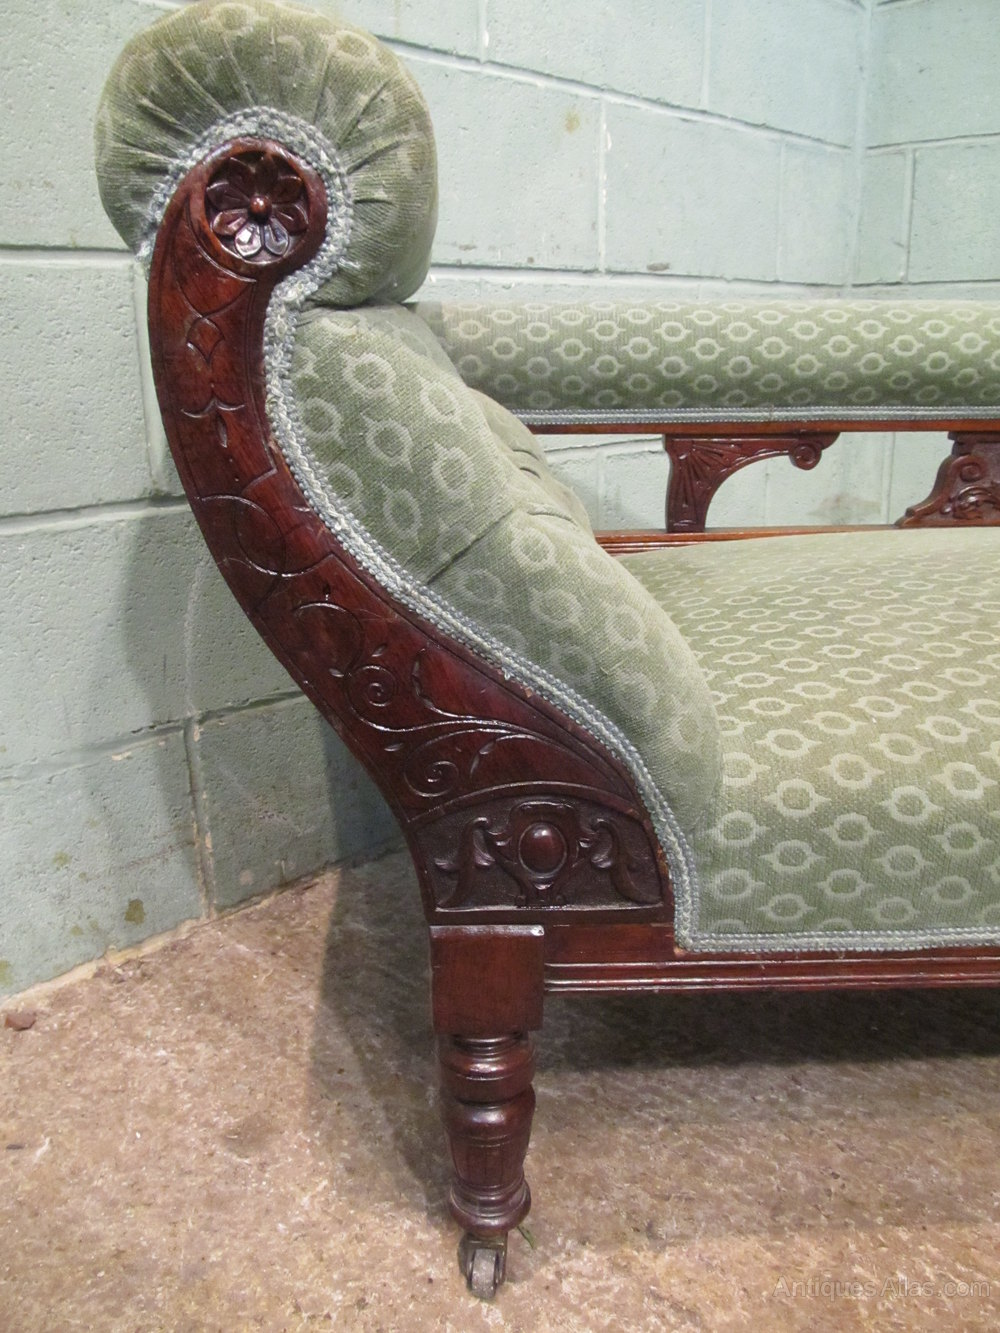 Antique edwardian mahogany chaise lounge c1900 antiques for Antique chaise longue for sale uk